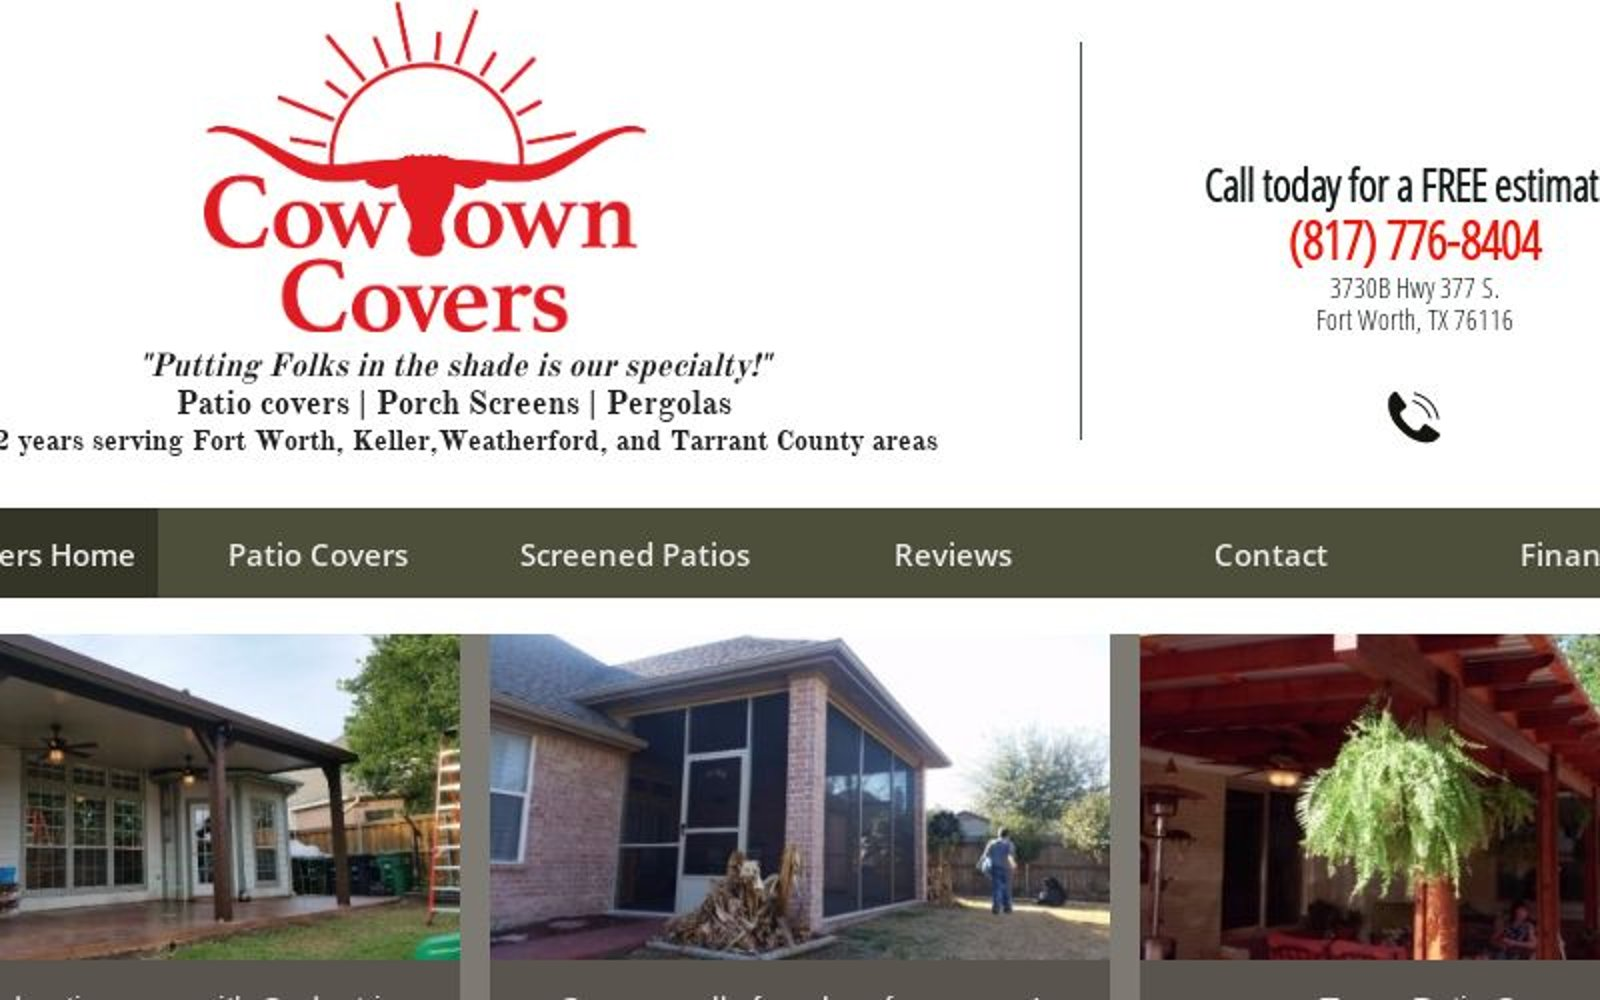 cowtownpatiocovers